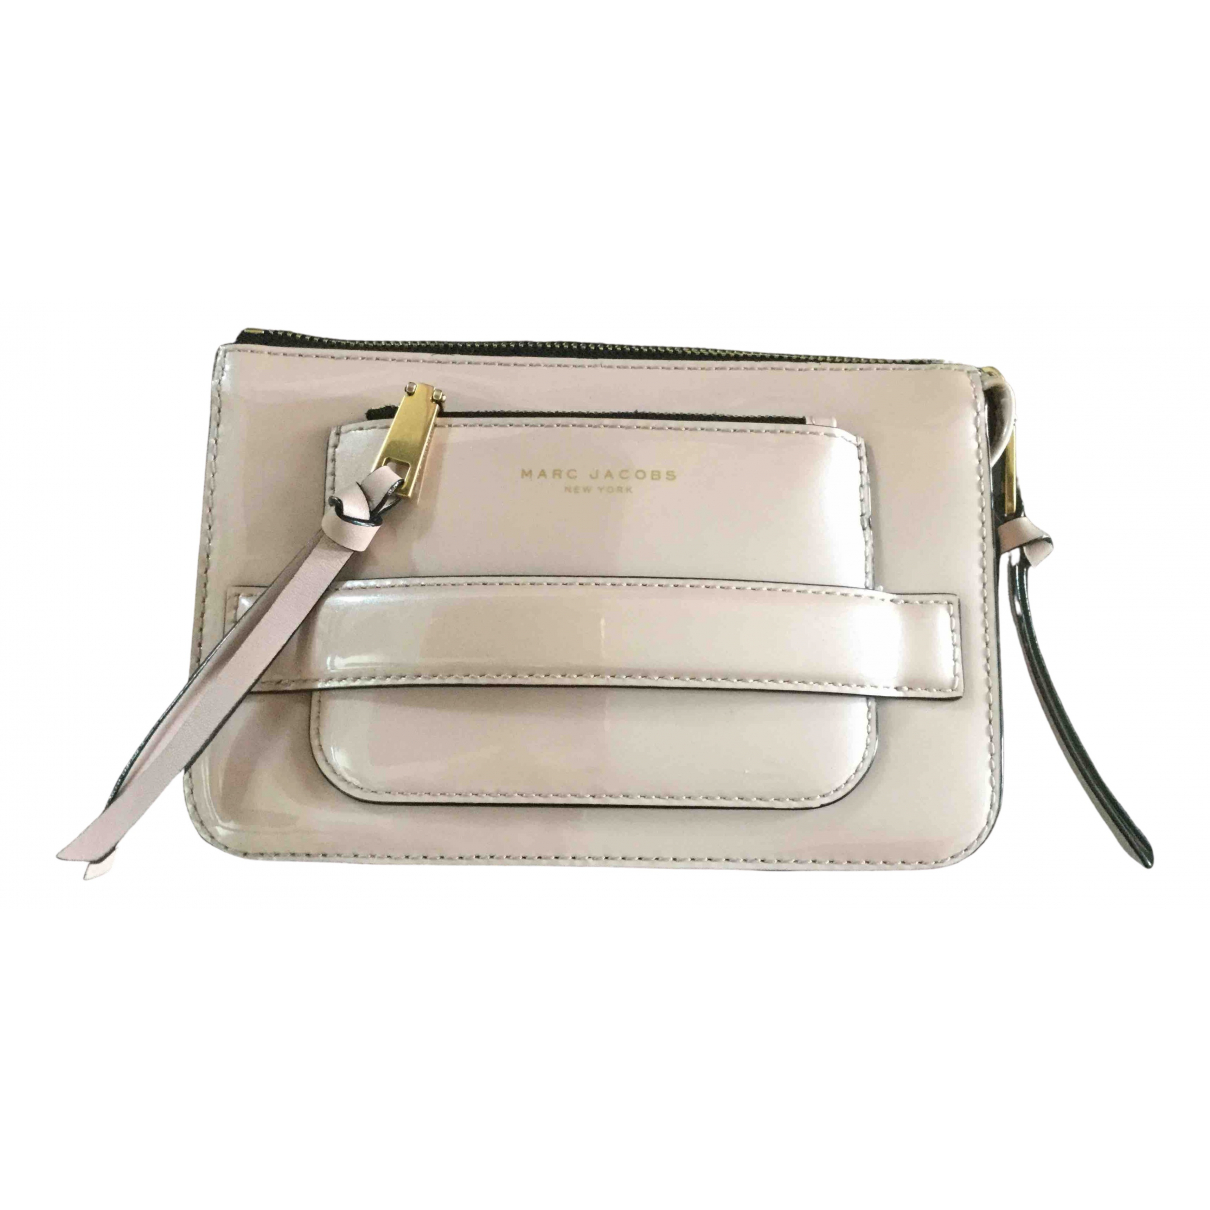 Marc Jacobs \N Pink Patent leather handbag for Women \N